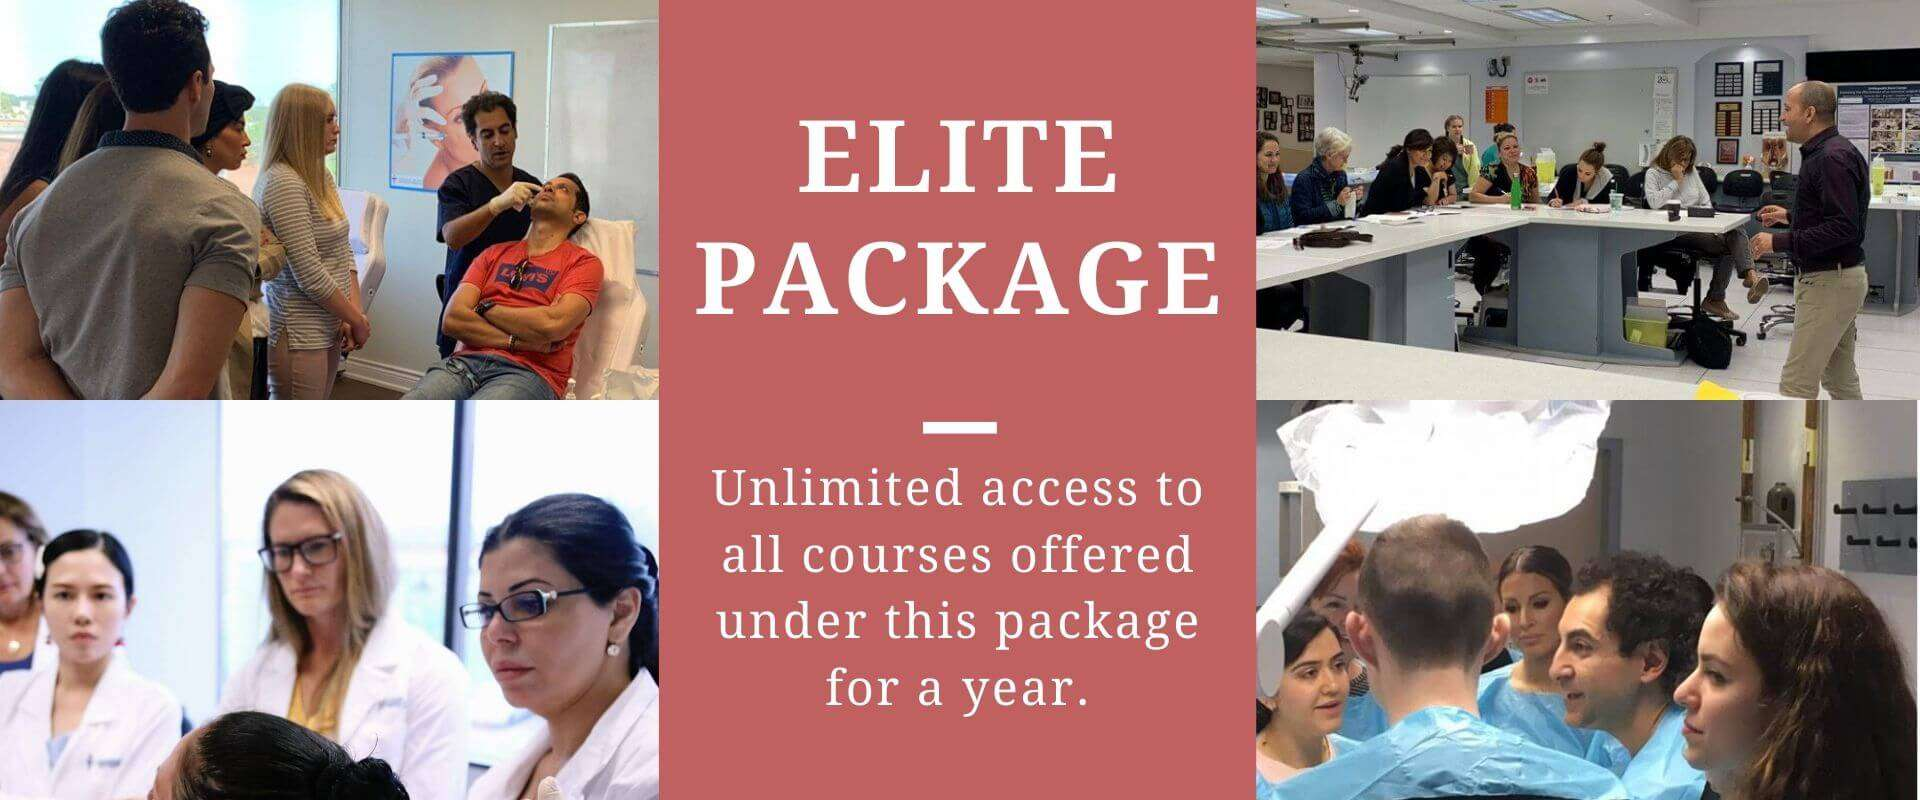 Elite package, Basic Botox and Filler, Advanced botox and filler, PRP and Mesotherapy, CBAM, Certificate, Aesthetic medicine, Injectables, Facial anatomy cadaver lab, Skin treatments, Chemical peel, Aesthetic Business